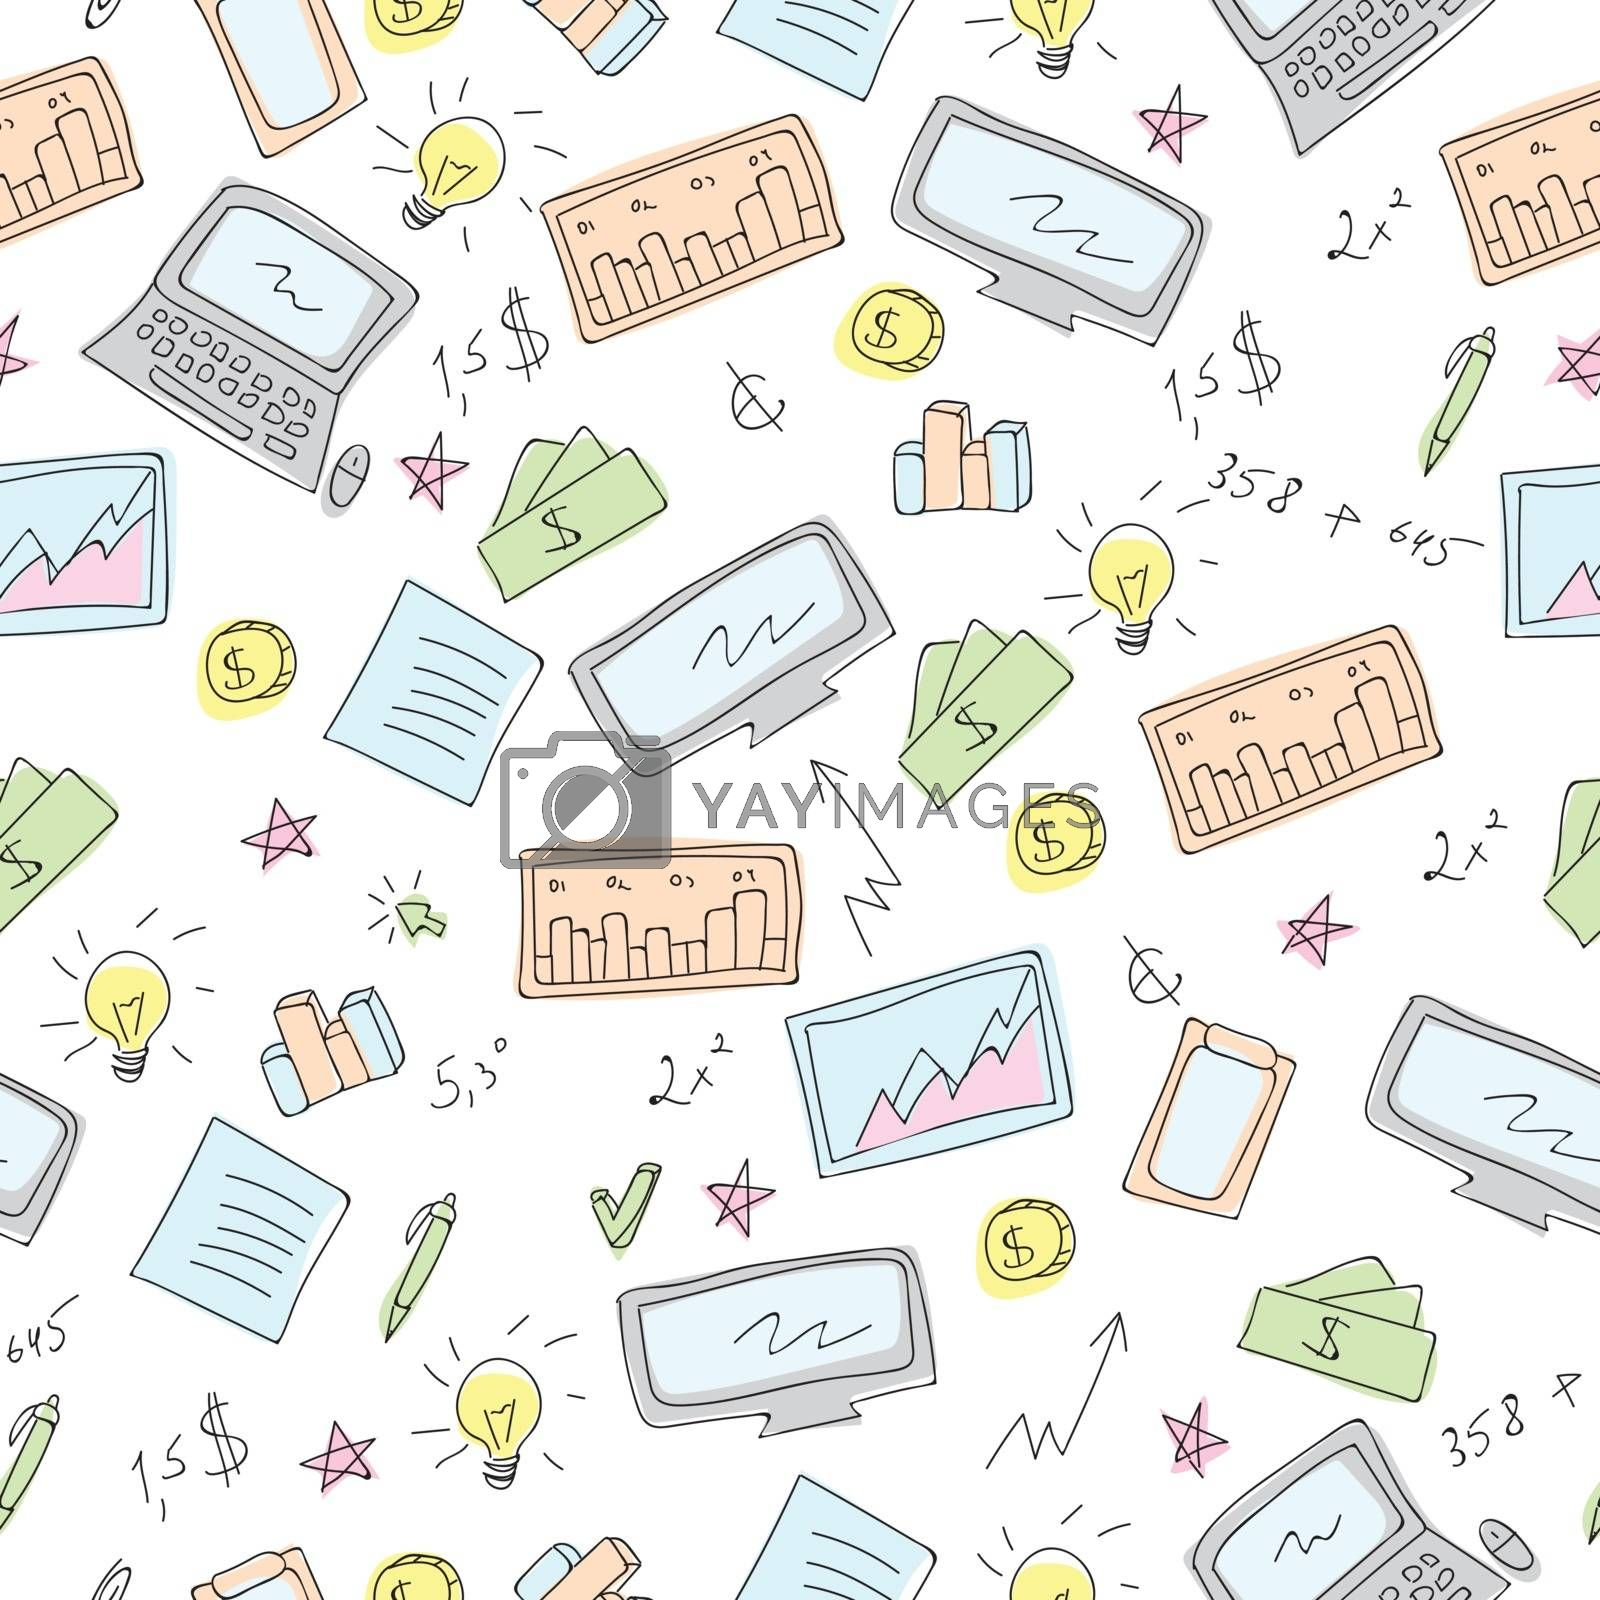 Financial and Business symbols Doodles Vector Seamless pattern